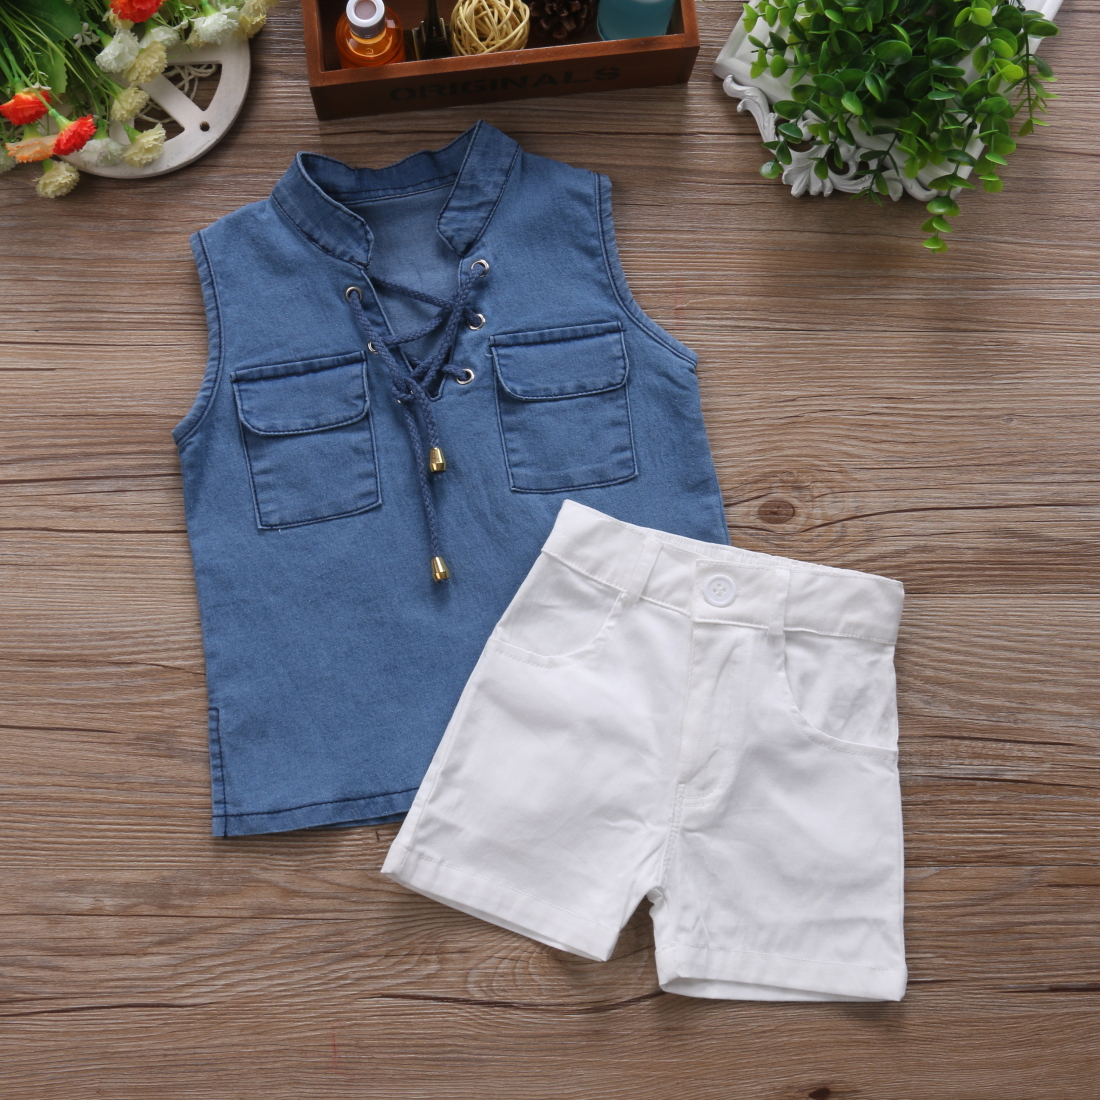 Fashion 2PCS Toddler Kids Baby Girls Summer Outfits Sleeveless Denim T-shirt Tops+Shorts Pants Casual Clothes Set off shoulder tops t shirts denim pants hole jeans 3pcs outfits set clothing fashion baby kids girls clothes sets